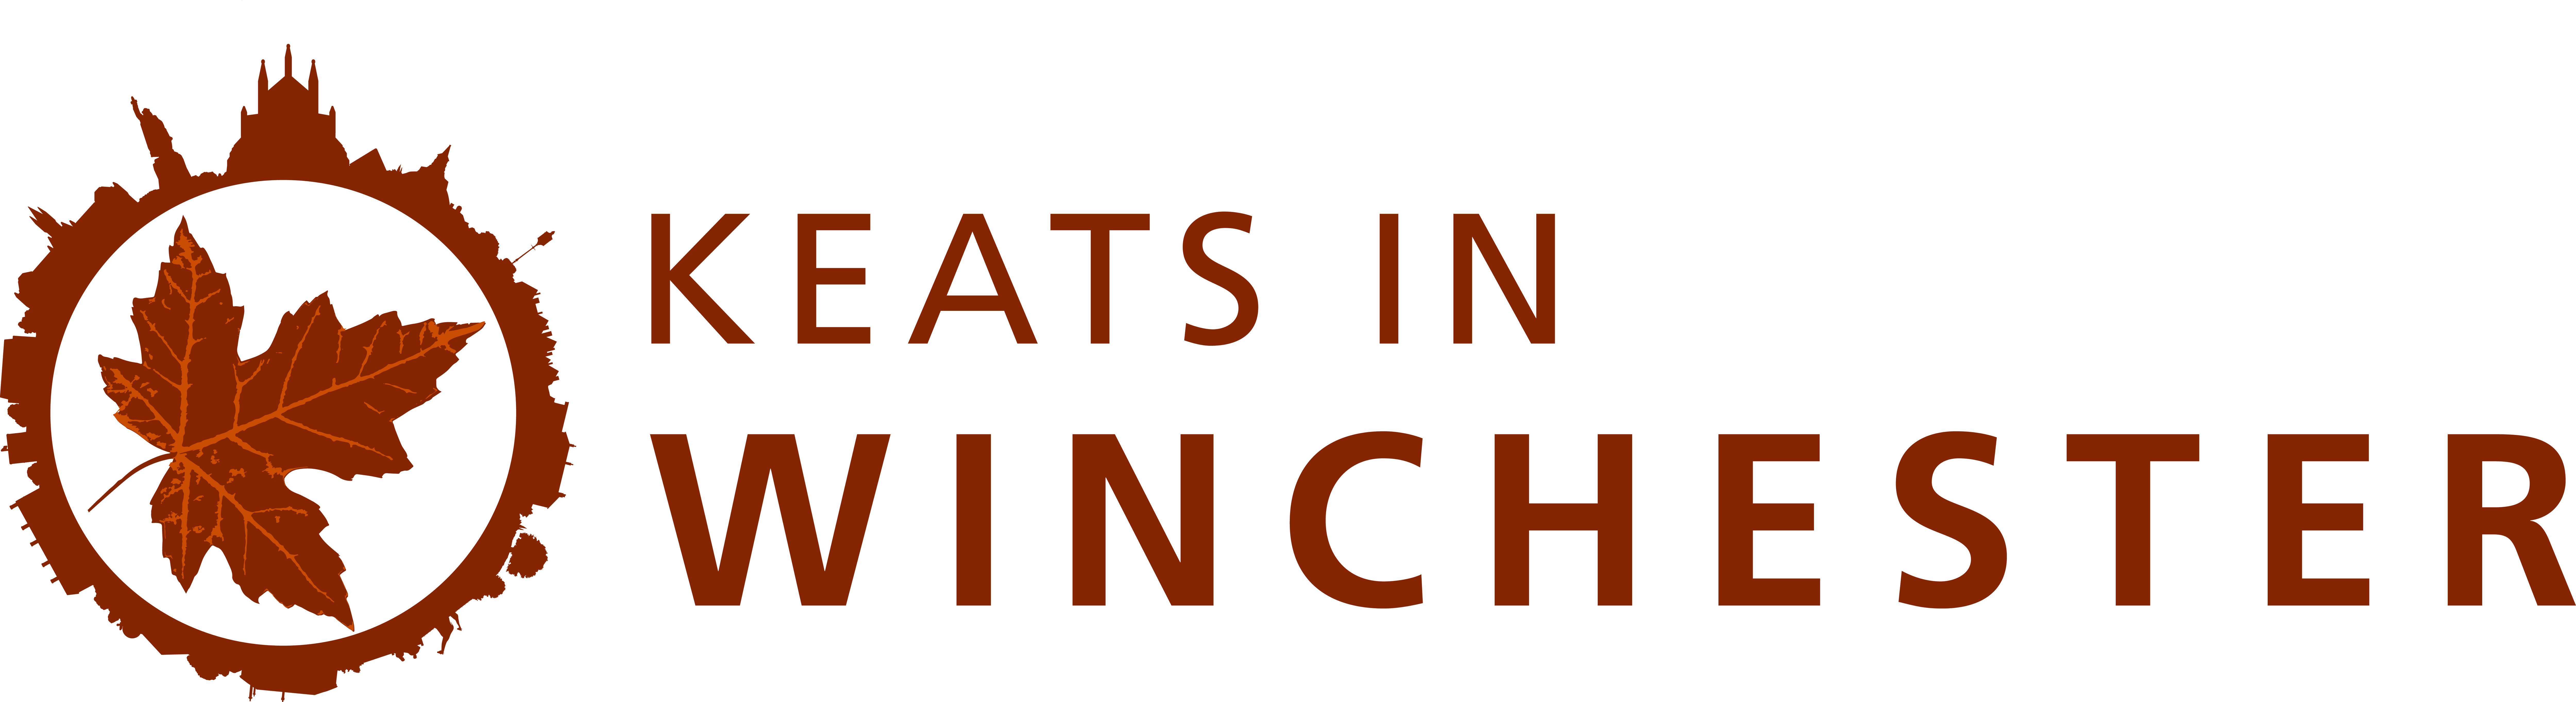 Visit Winchester logo